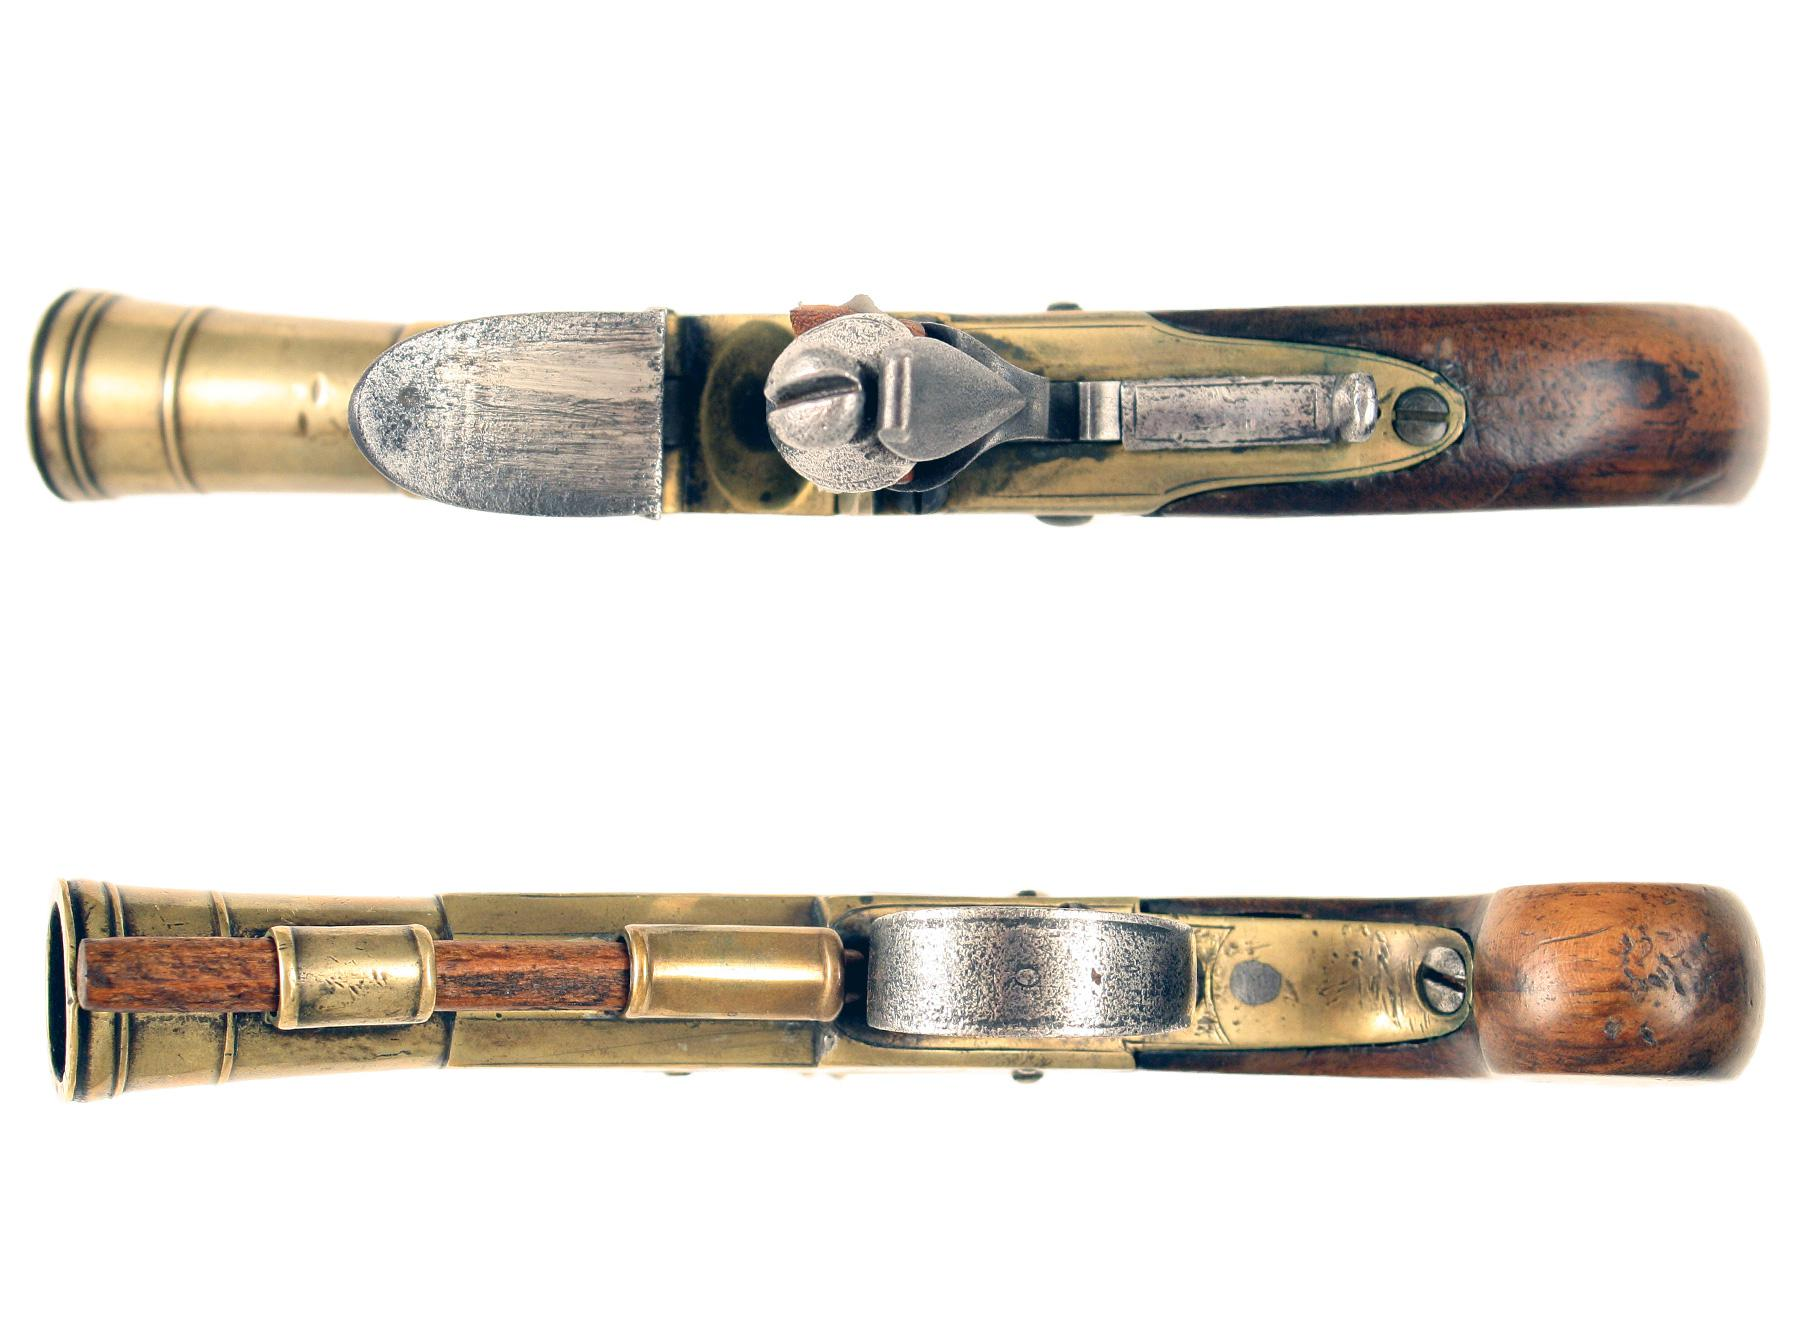 A Flintlock Blunderbuss Pistol by Reeves